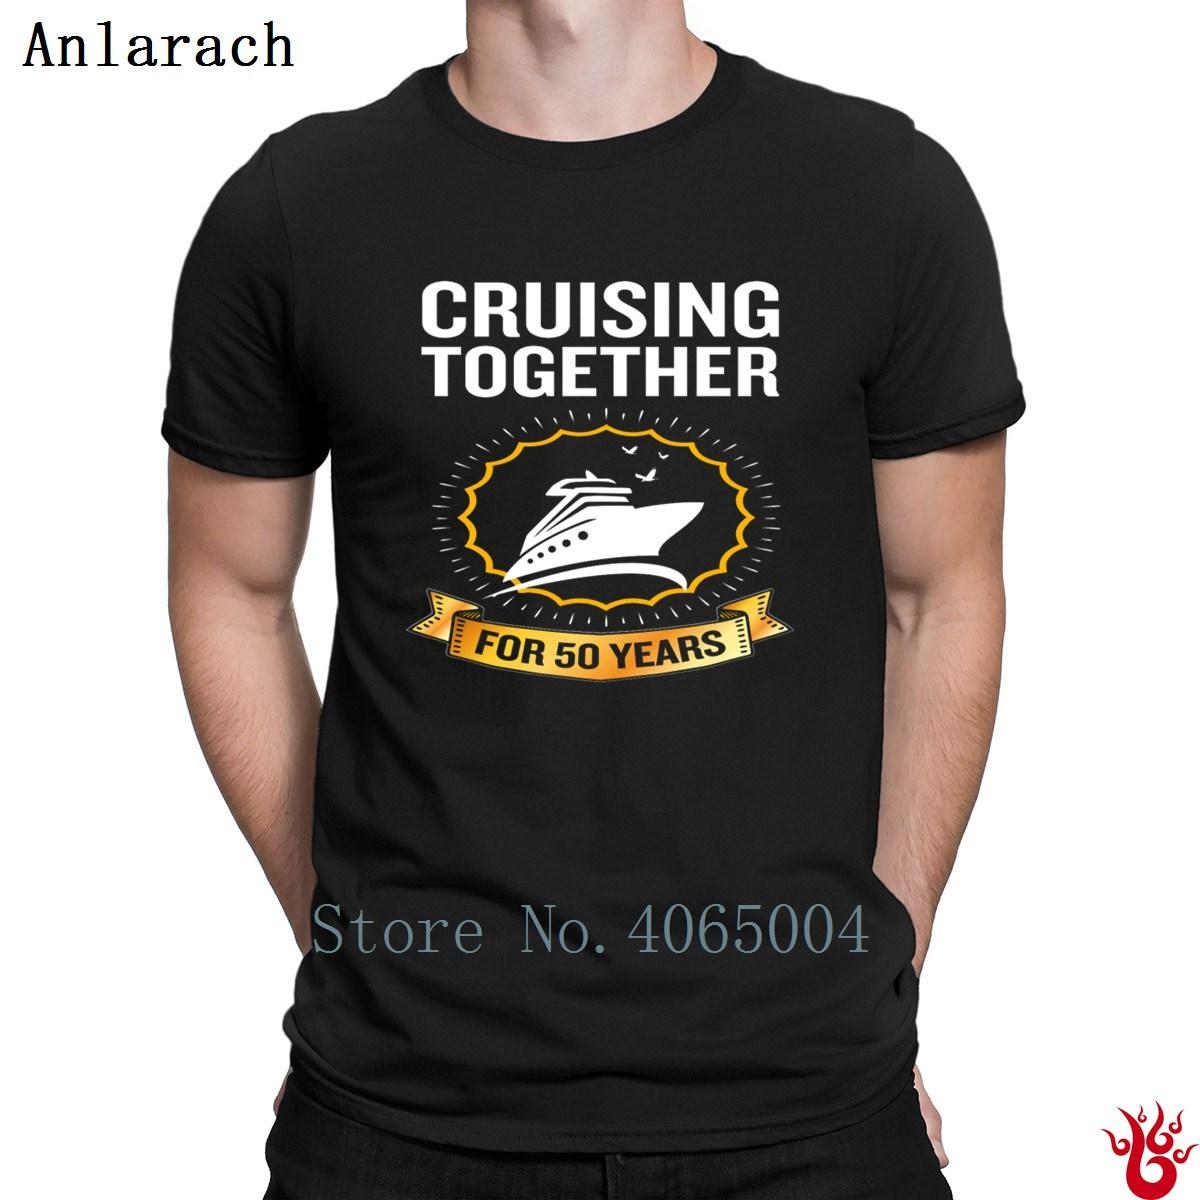 cd6665c0 Cruising Together For 50 Years 50th Anniversary Tshirts Humor Plus Size 3xl  Graphic T Shirt For Men Unisex Funny Tee T Shirt Buy From Dzuprighth, ...